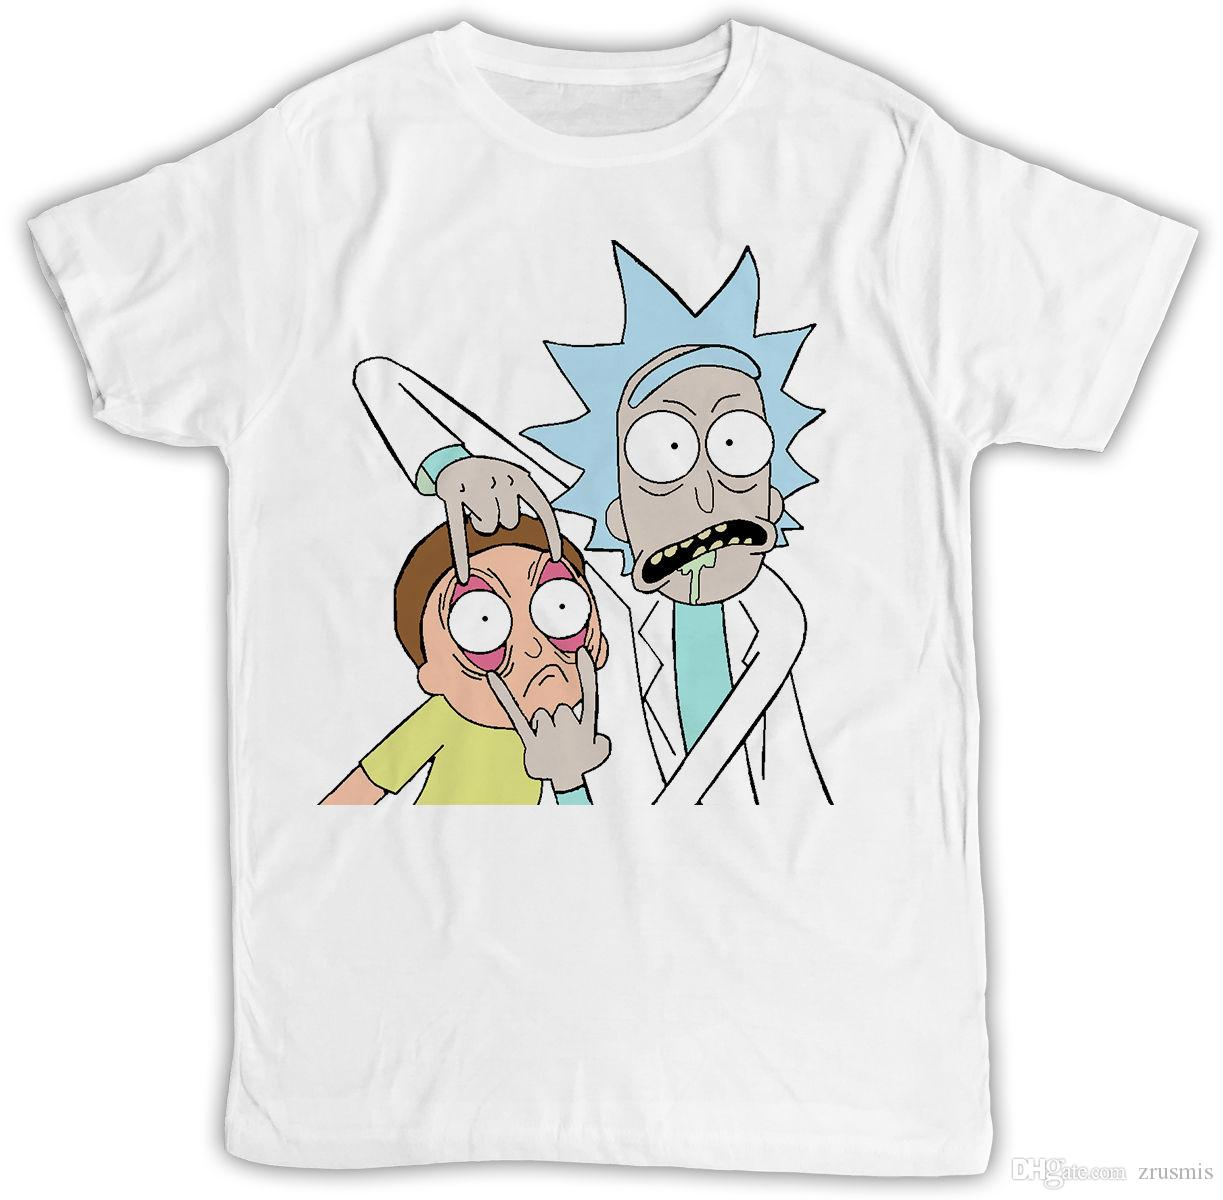 RICK AND MORTY POSTER OPEN EYES IDEAL BIRTHDAY GIFT SHORT SLEEVE MENS T SHIRT Poker Shirts Tshits From Zrusmis 1039